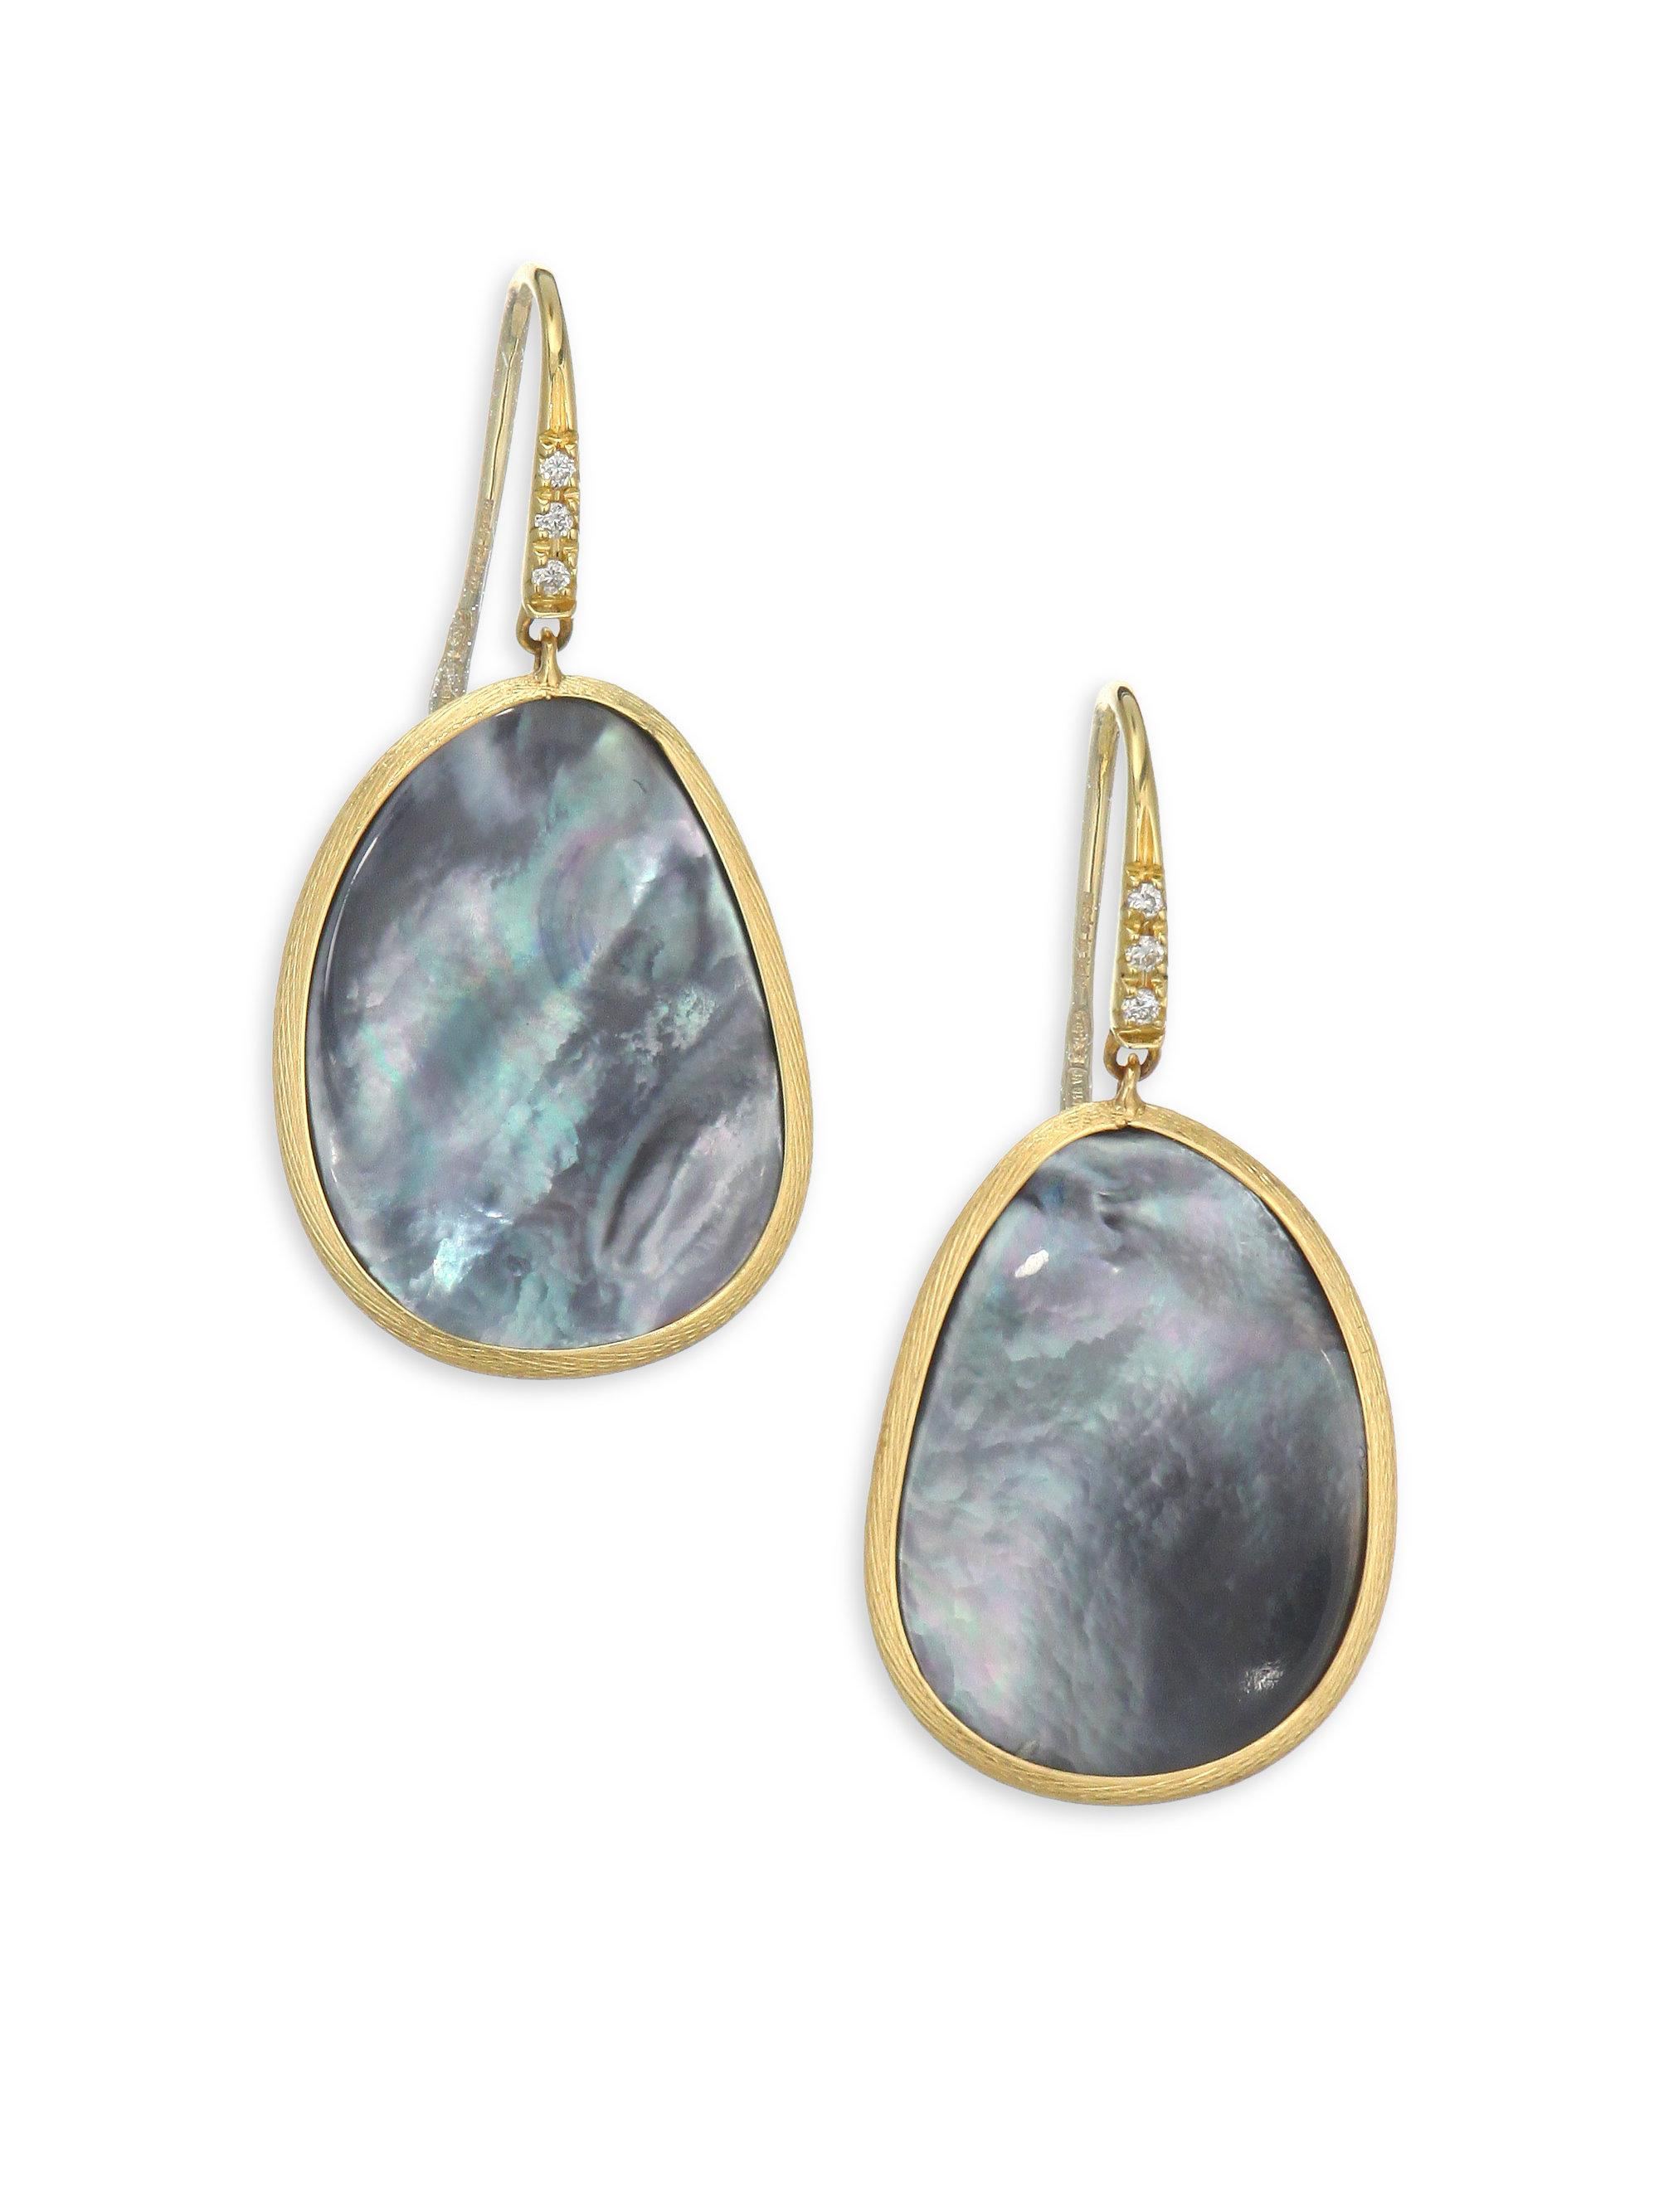 Marco Bicego Lunaria Stud Earrings with Black Mother-of-Pearl q2V5Z1trvZ